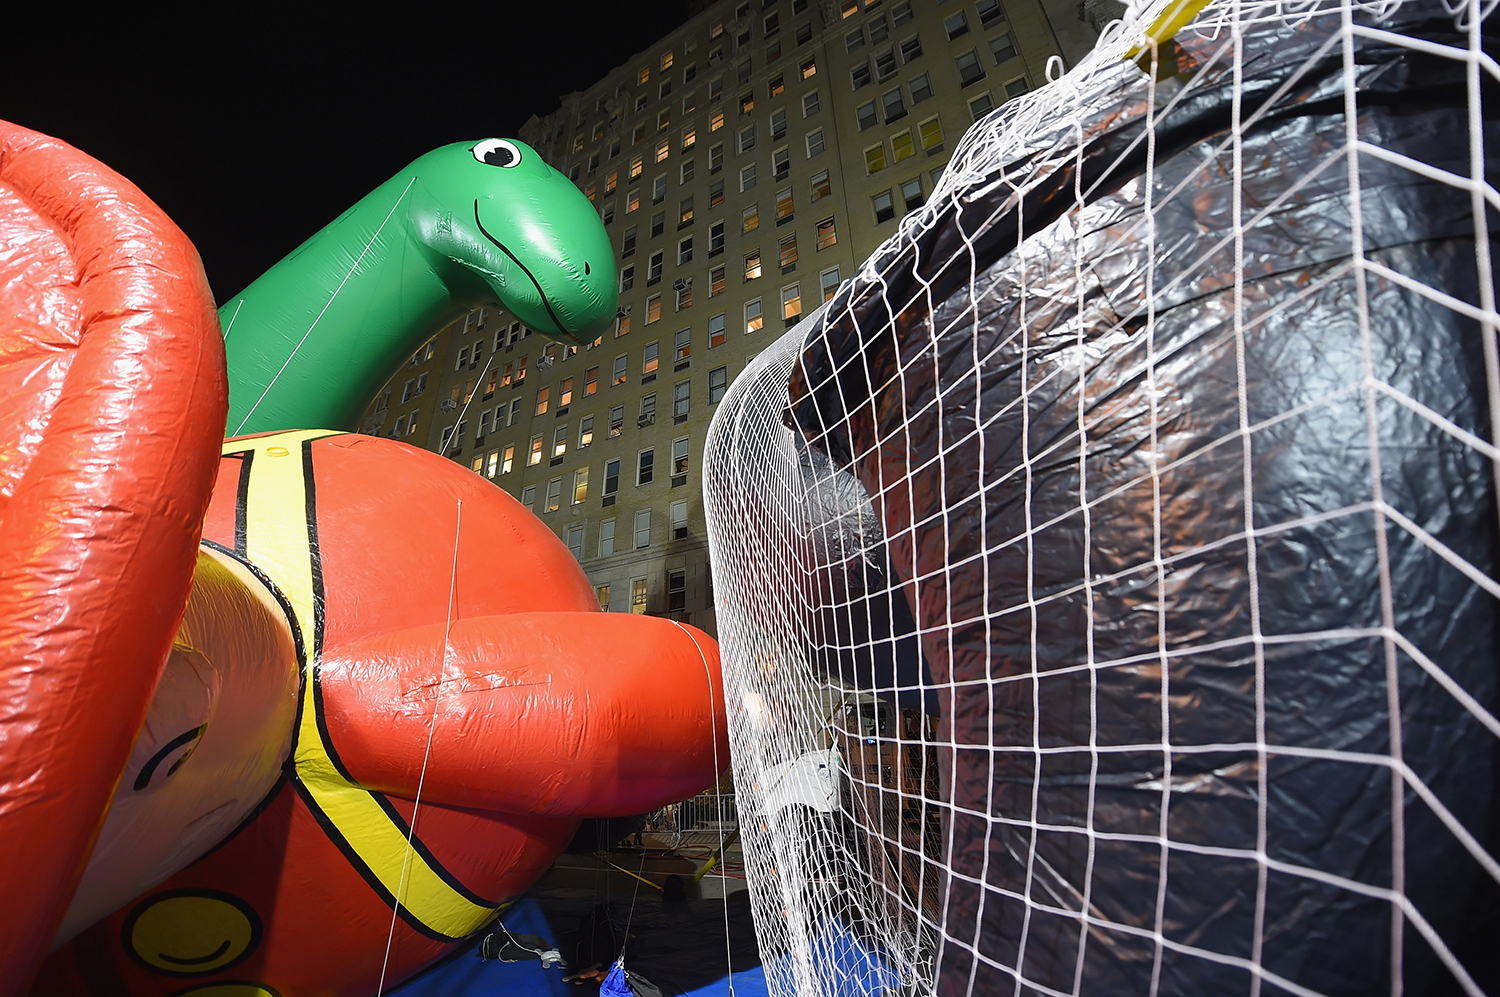 NEW YORK, NY - NOVEMBER 25: General view of the Dino and Harold the Fireman balloons during the 89th Annual Macy's Thanksgiving Day Inflation Eve on November 25, 2015 in New York City. Michael Loccisano/Getty Images/AFP